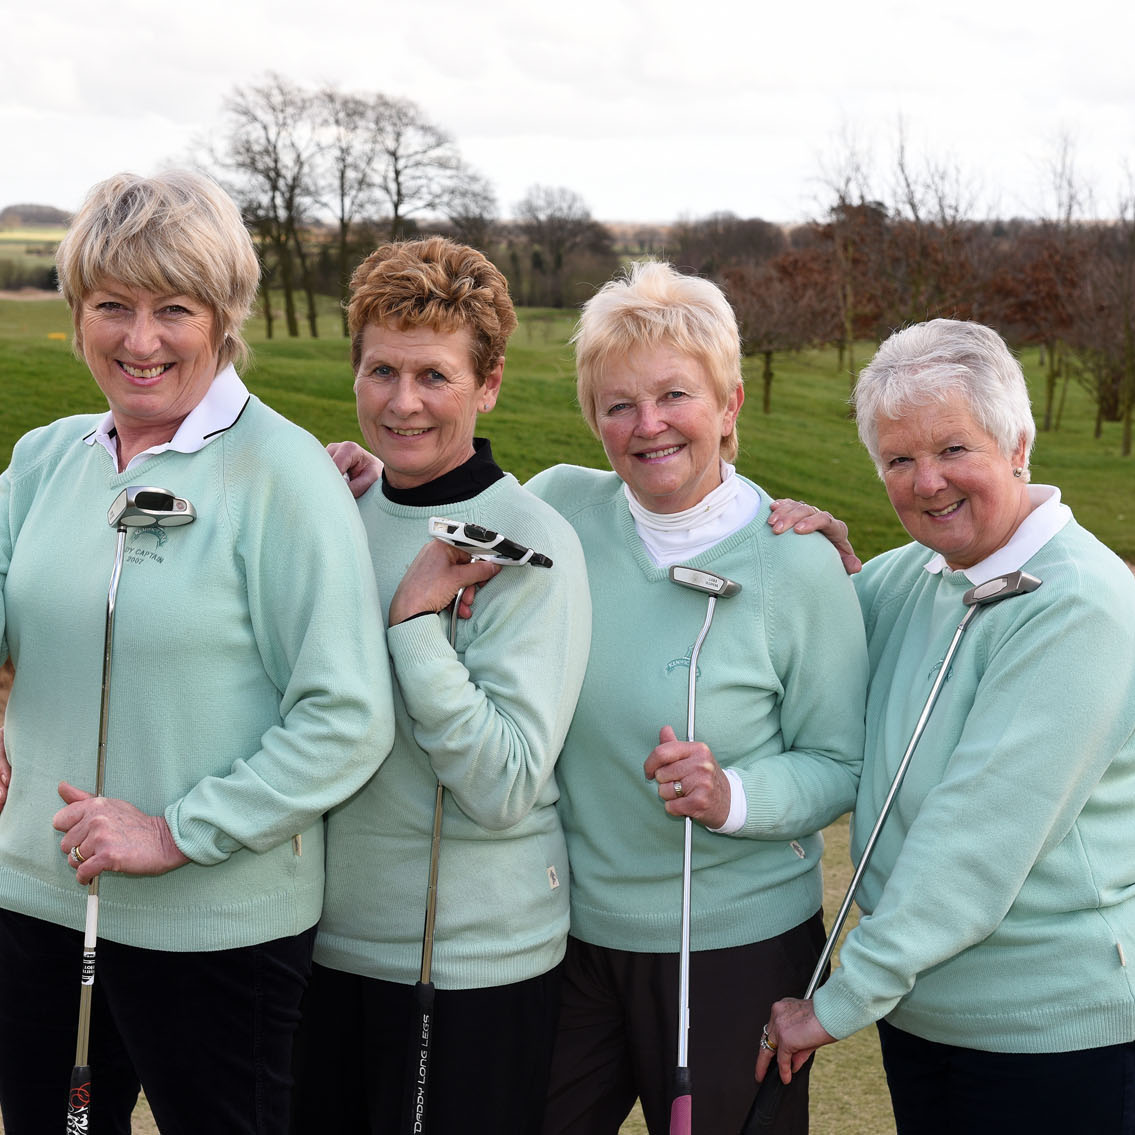 Louth Lady Golfers - Lens Replacement Surgery